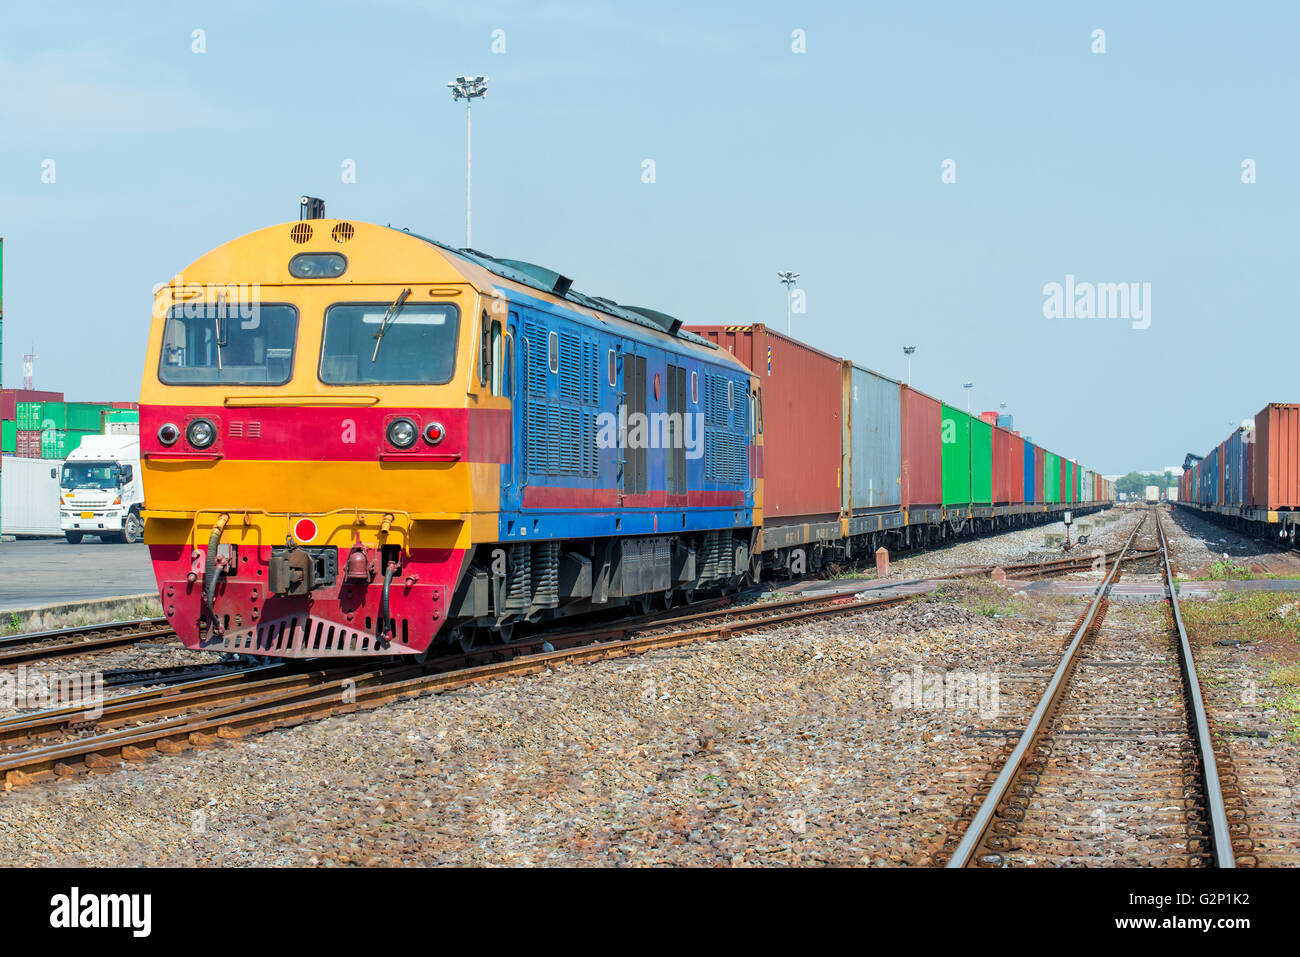 Cargo train platform with freight train container at depot - Stock Image